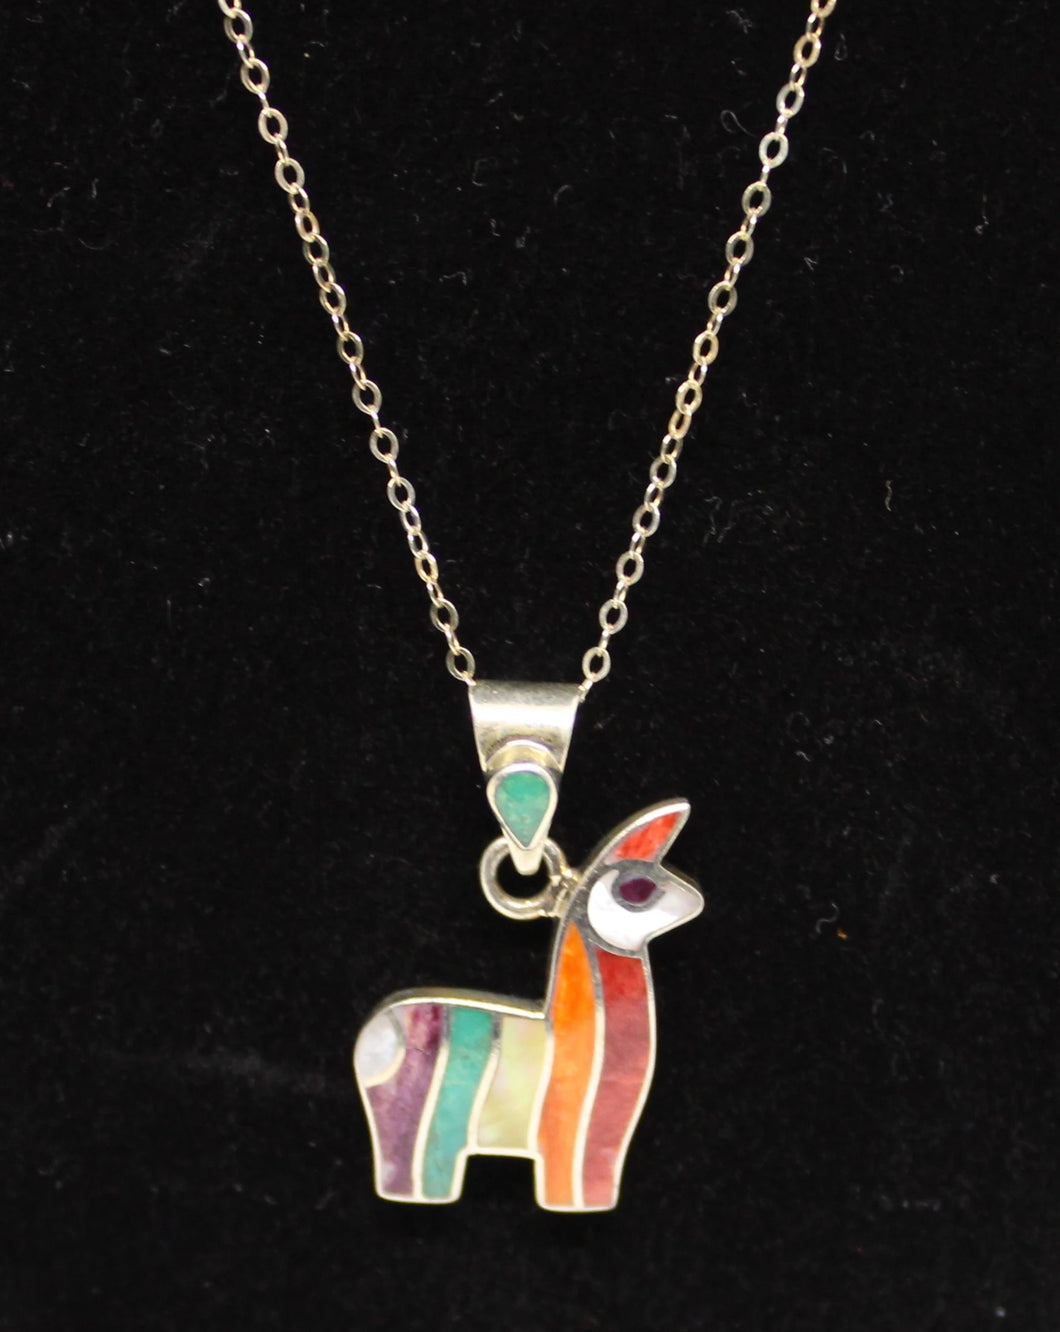 Peruvian Sterling Silver Inlaid Alpaca Necklace